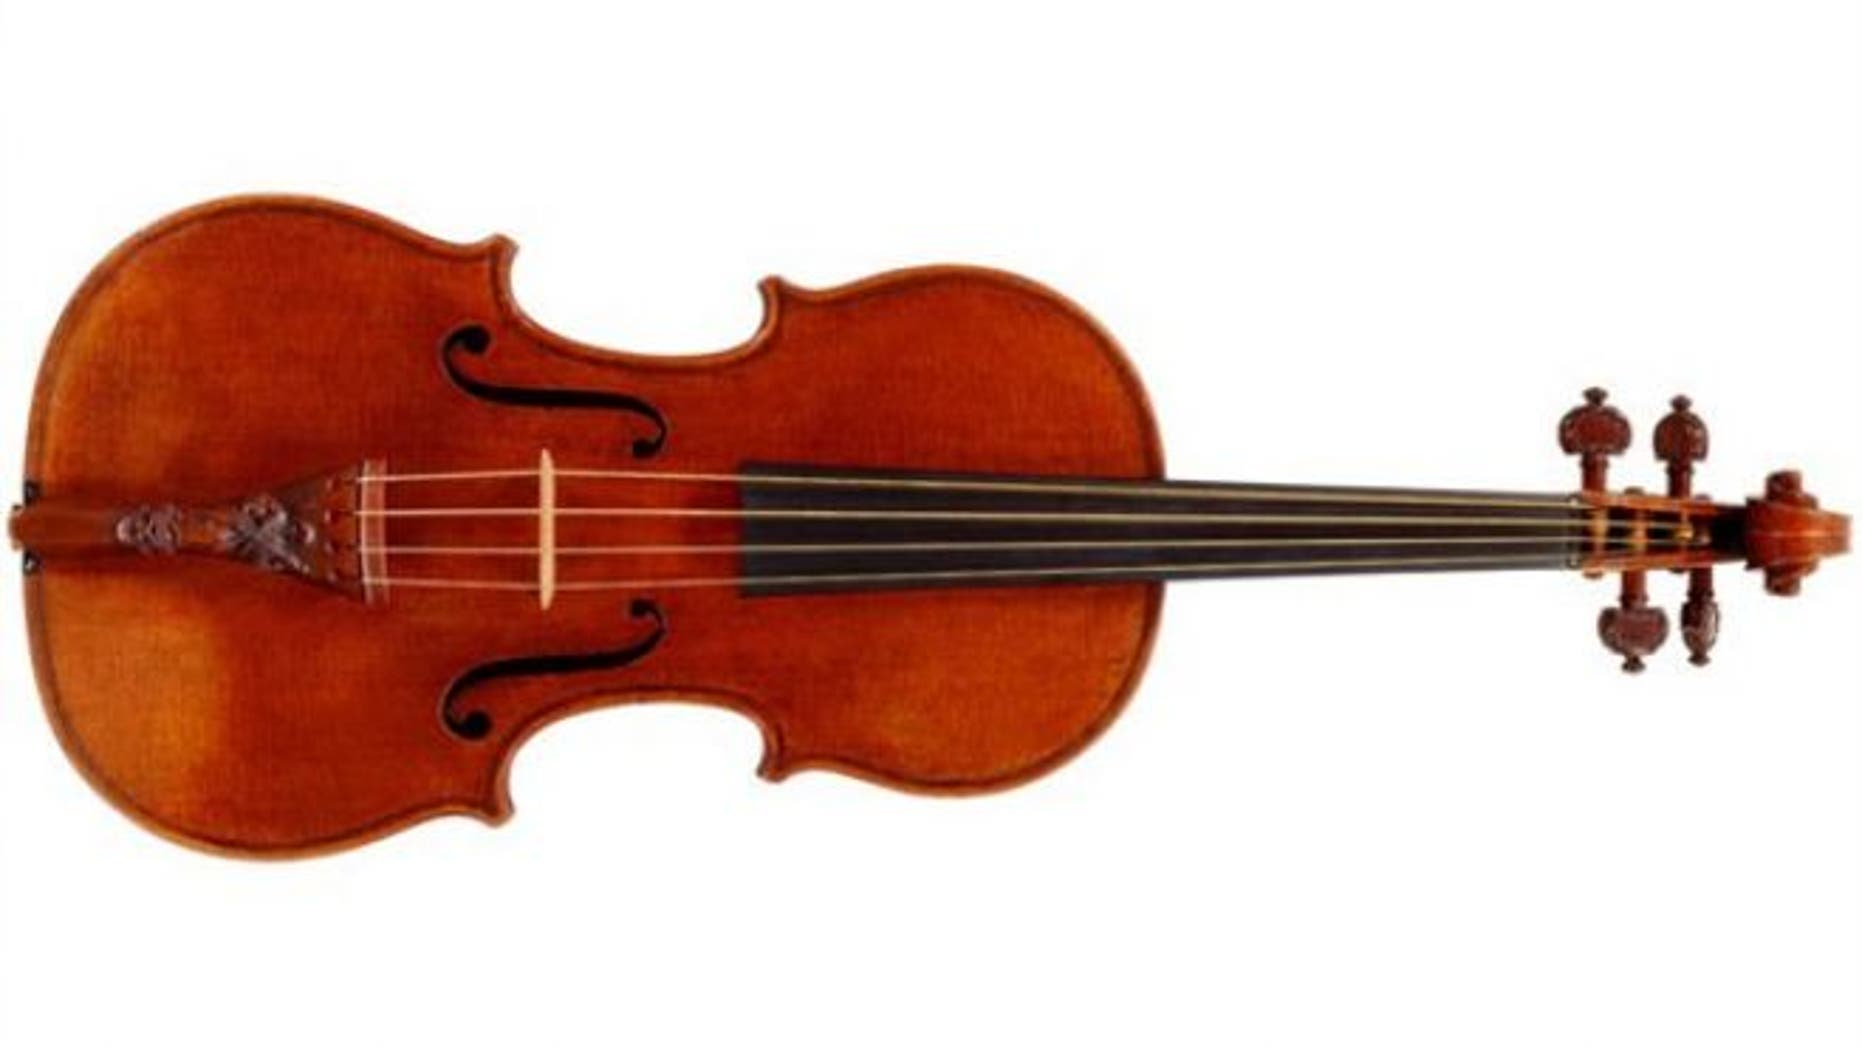 This 1721 Stradivarius violin sold for $16.33 million at auction in 2011.